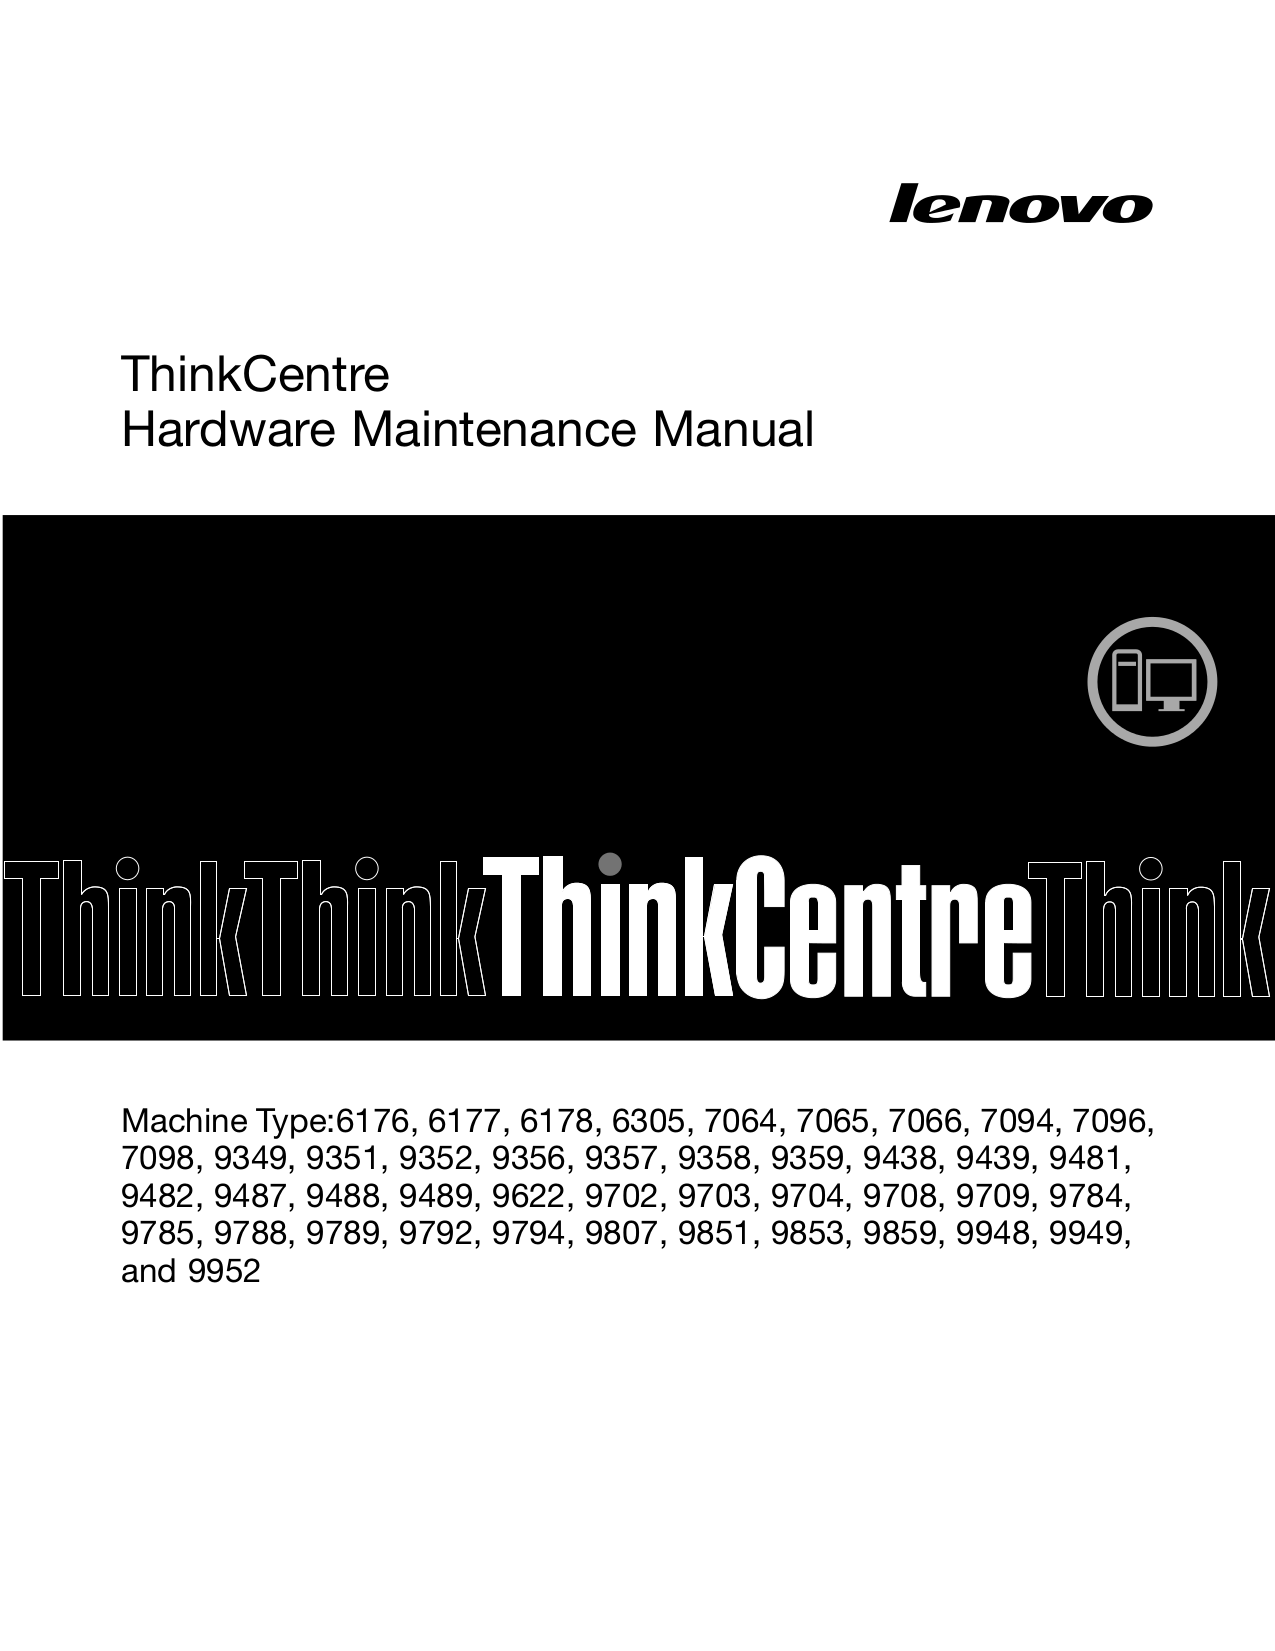 pdf for Lenovo Desktop ThinkCentre M57e 7094 manual